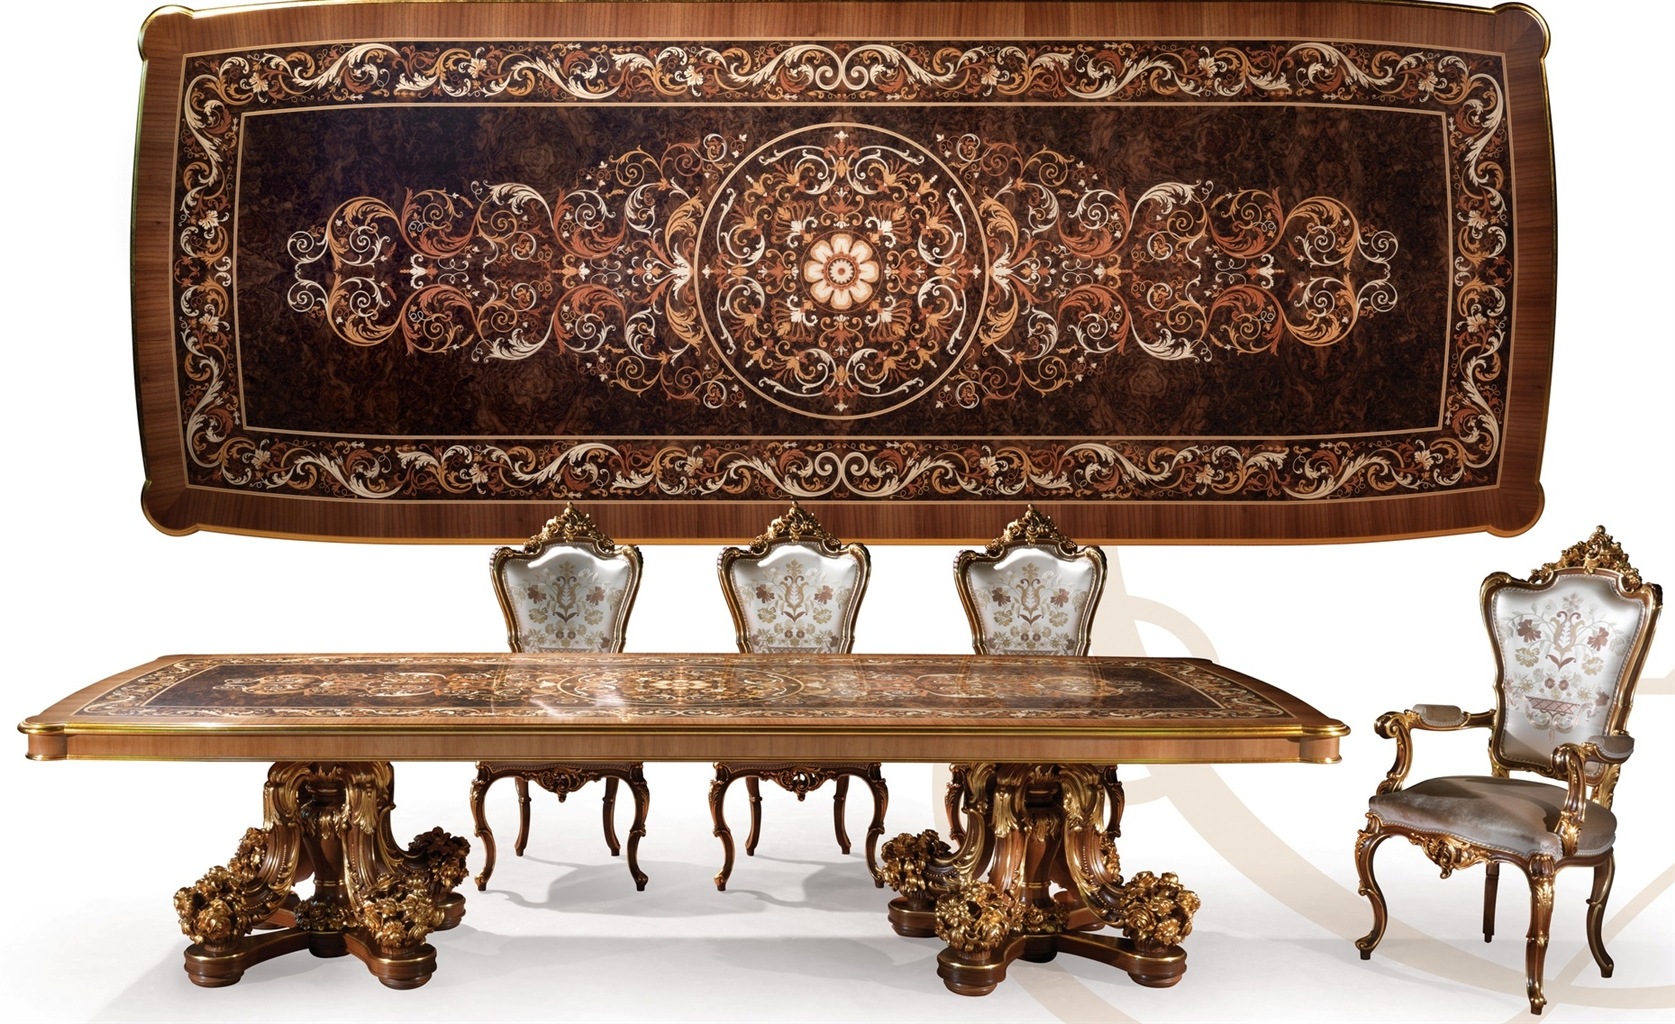 Luxury dining furniture with exceptional detailing and for Luxury dining table